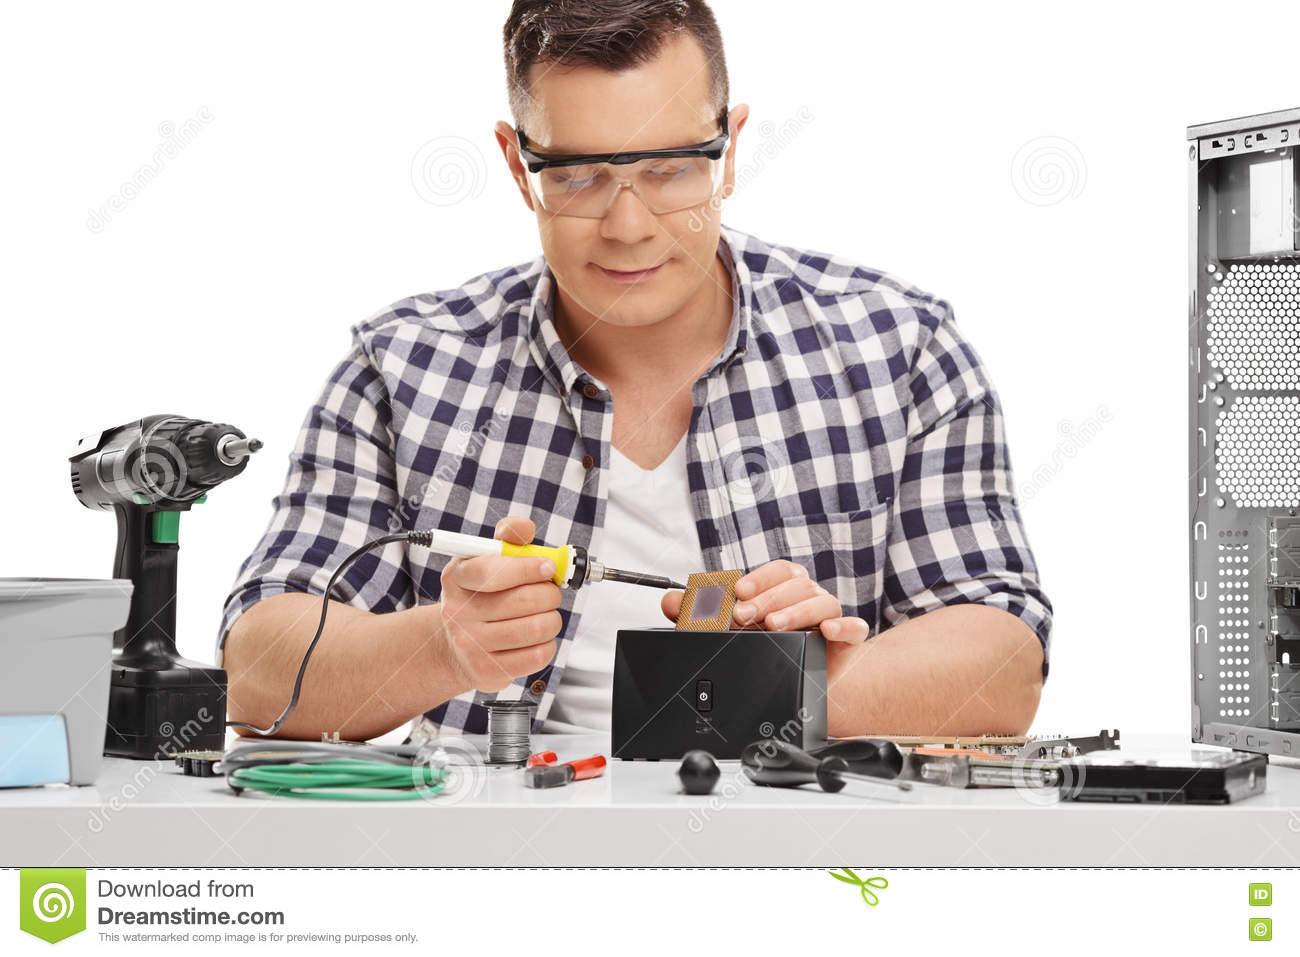 pc technician working with soldering iron stock photo image 70489946. Black Bedroom Furniture Sets. Home Design Ideas